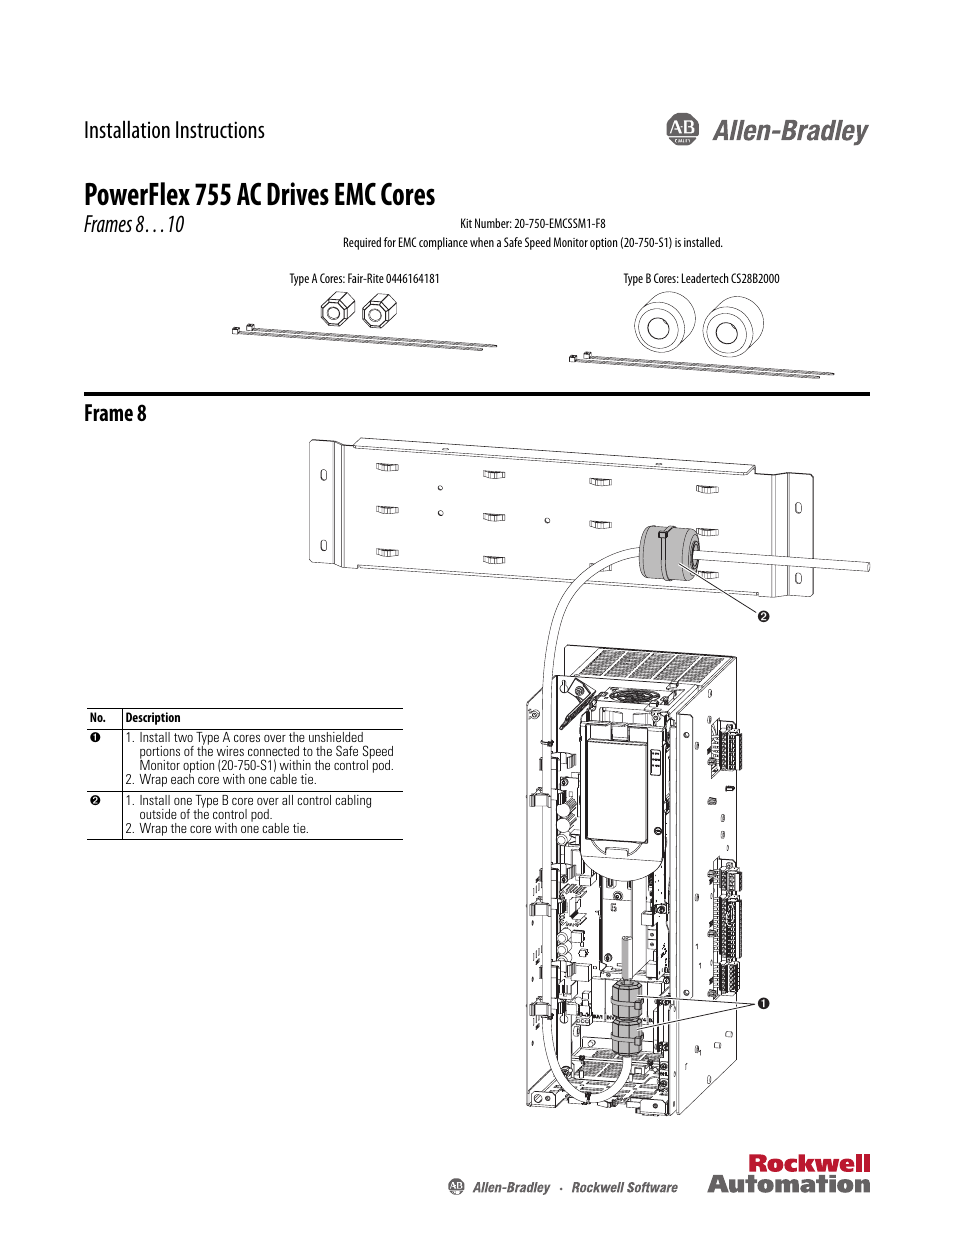 rockwell automation 21g powerflex 755 emc core kit frame 8 and larger page1 rockwell automation 21g powerflex 755 emc core kit, frame 8 and powerflex 755 wiring diagrams at eliteediting.co